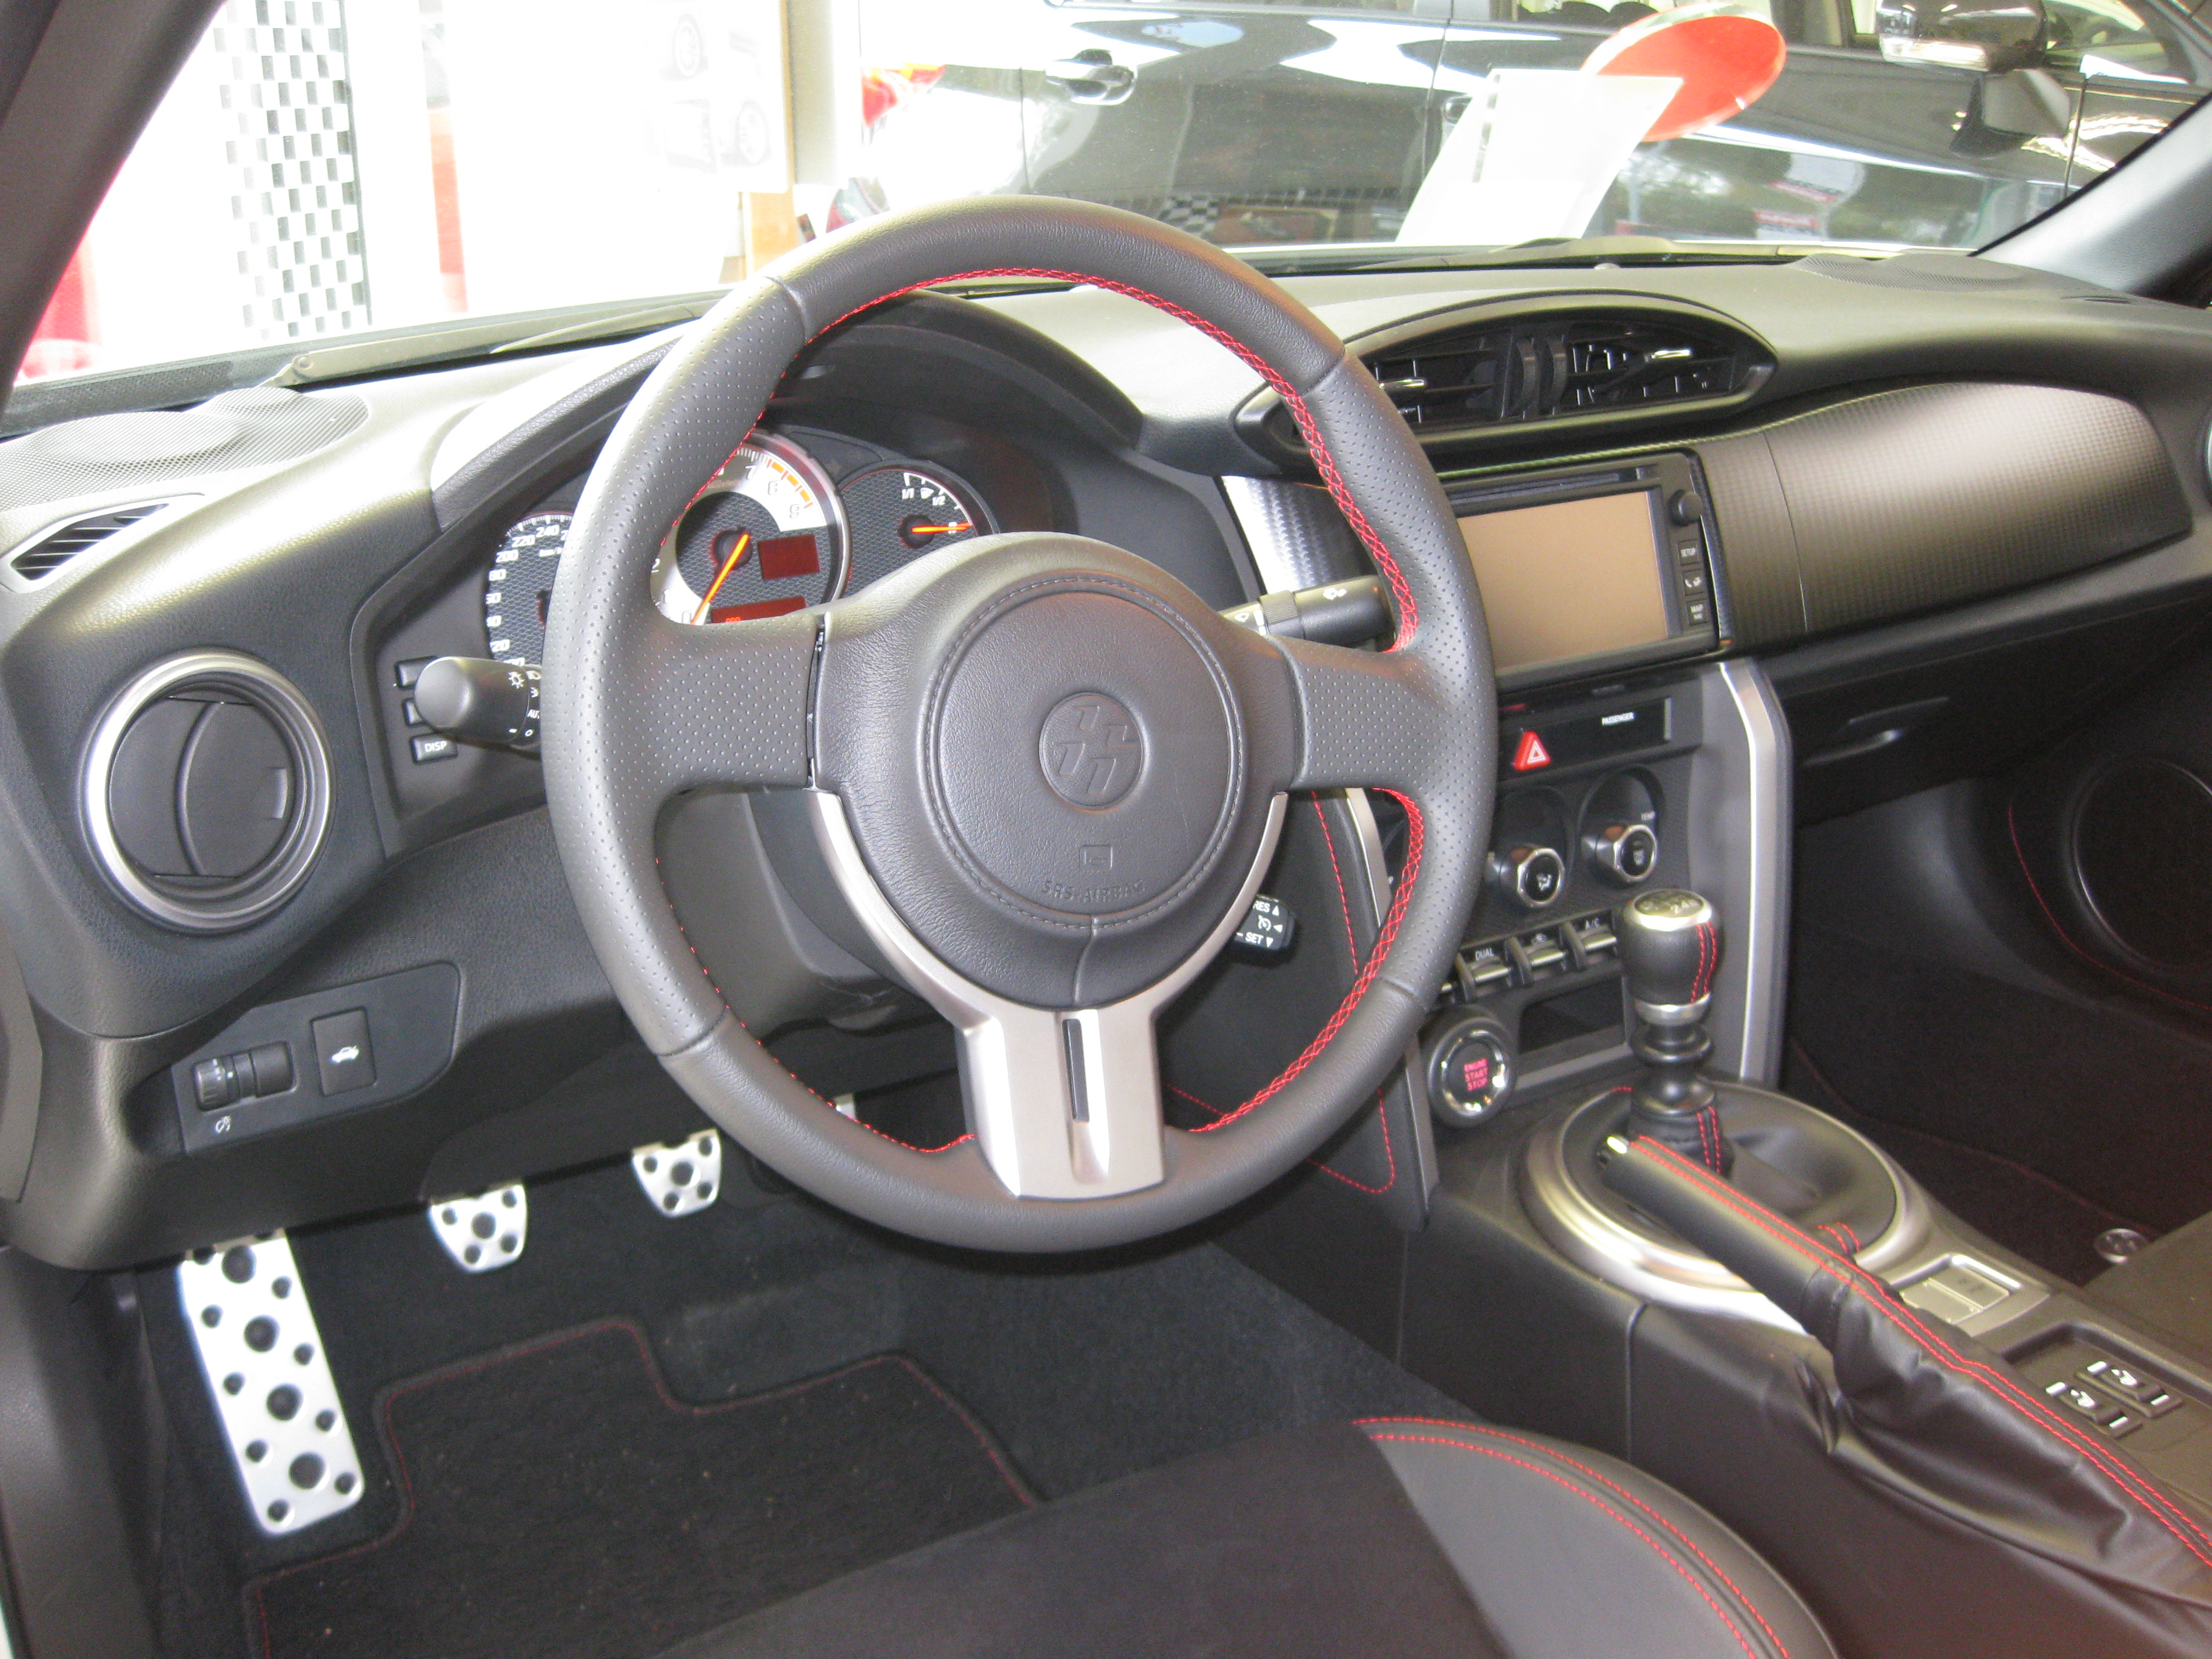 File:Toyota GT86 Cockpit.JPG - Wikimedia Commons | {Auto cockpit beschreibung 27}